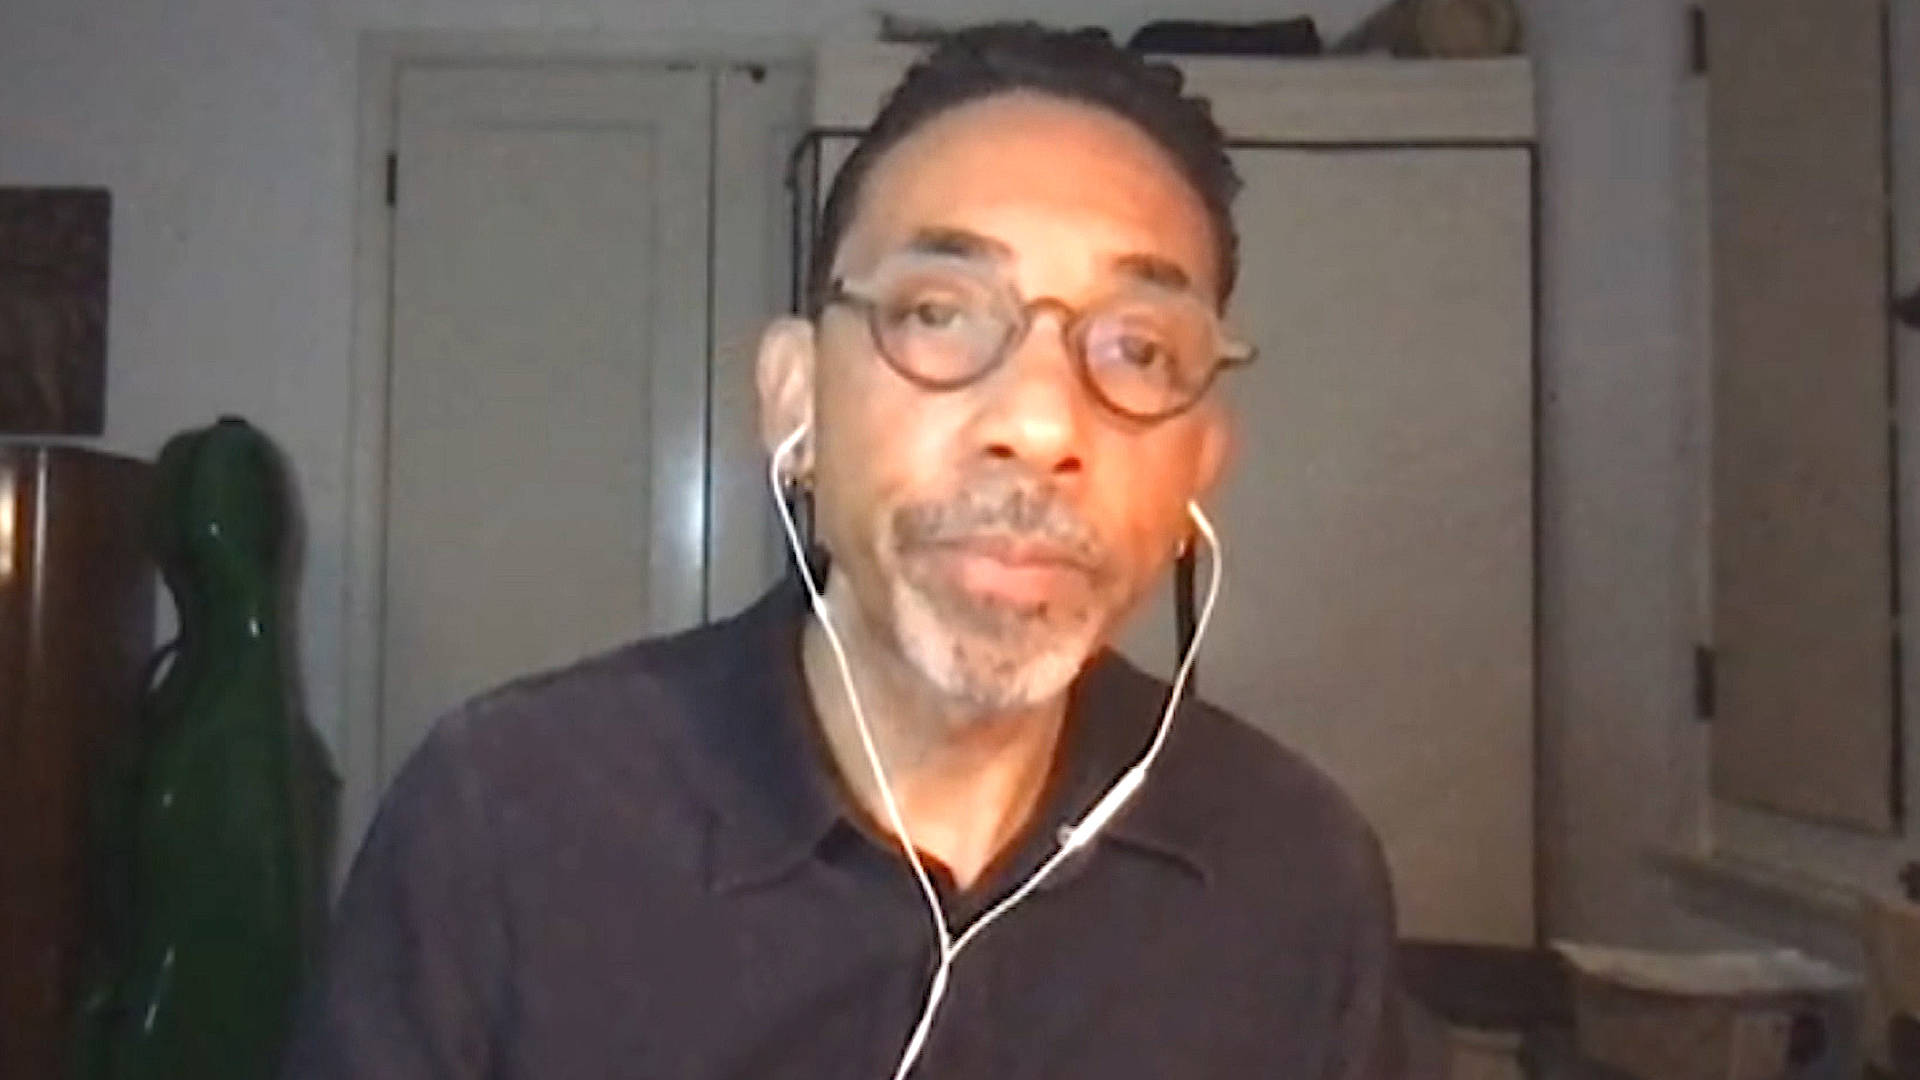 Read more about the article Robin D.G. Kelley on Derek Chauvin Murder Trial, Reparations in Evanston & Cornel West Tenure Fight